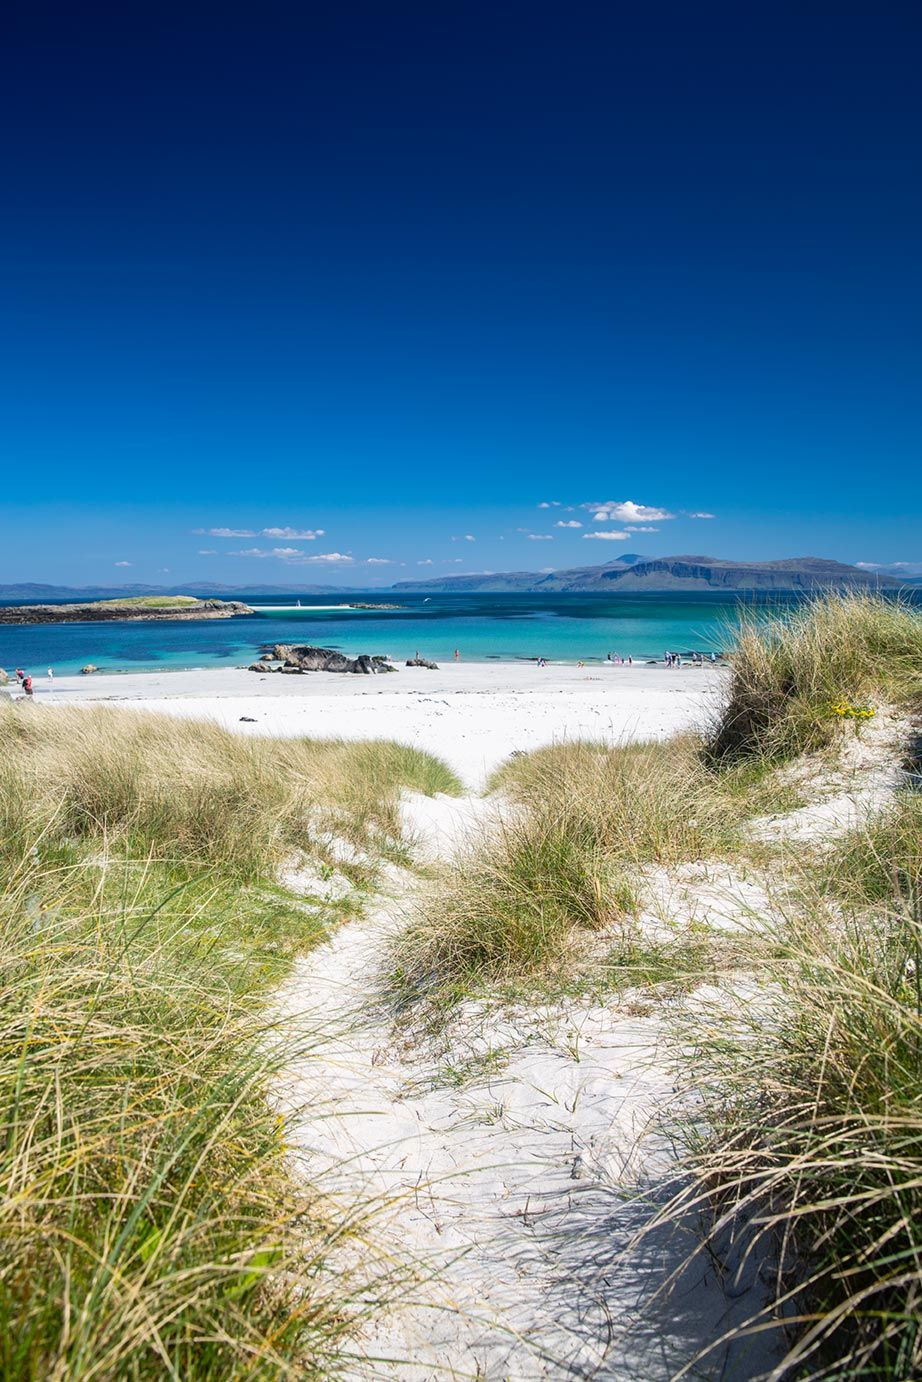 North shore beach of Iona, Scotland, just off the coast of the Isle of Mull, UK